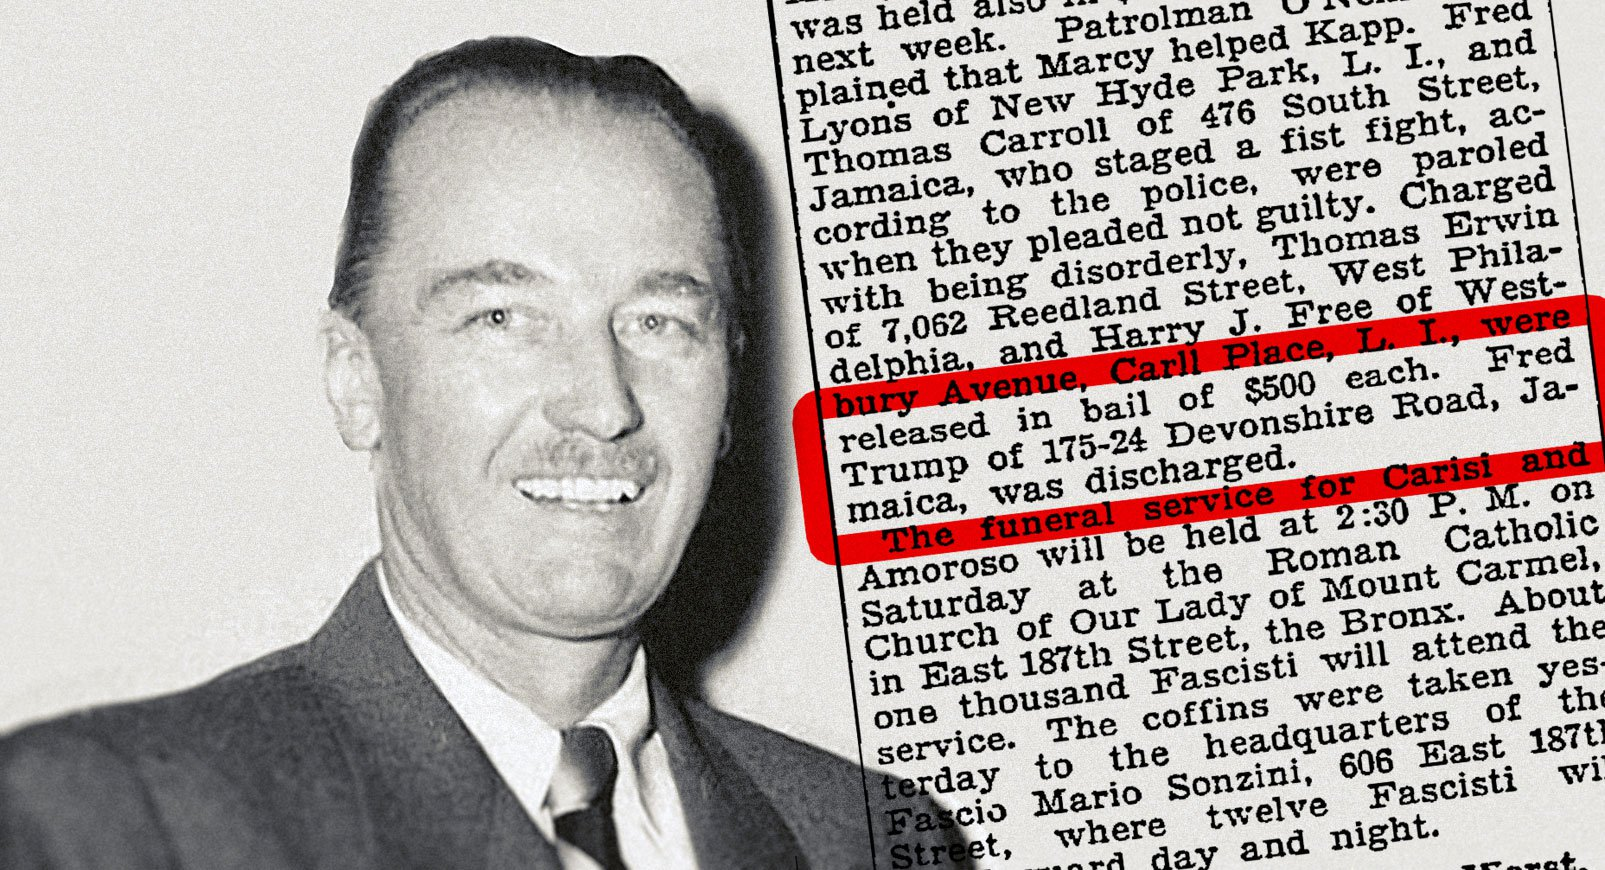 Donald Trump's Father May Have Had KKK Associations | Crooks and Liars